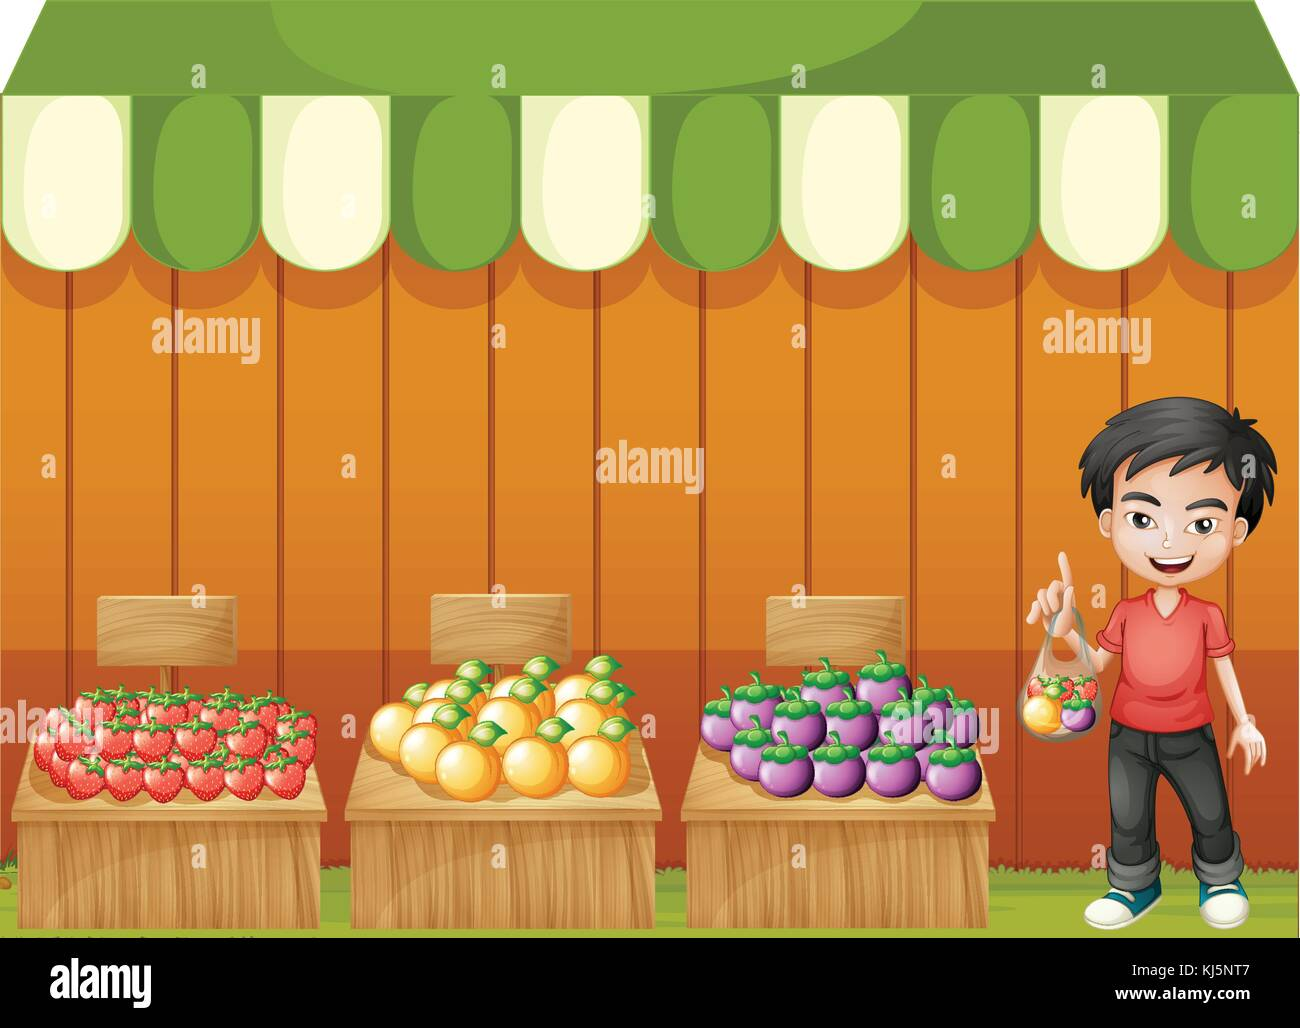 Illustration of a fruit shop with a young boy wearing a red shirt on a white background Stock Vector